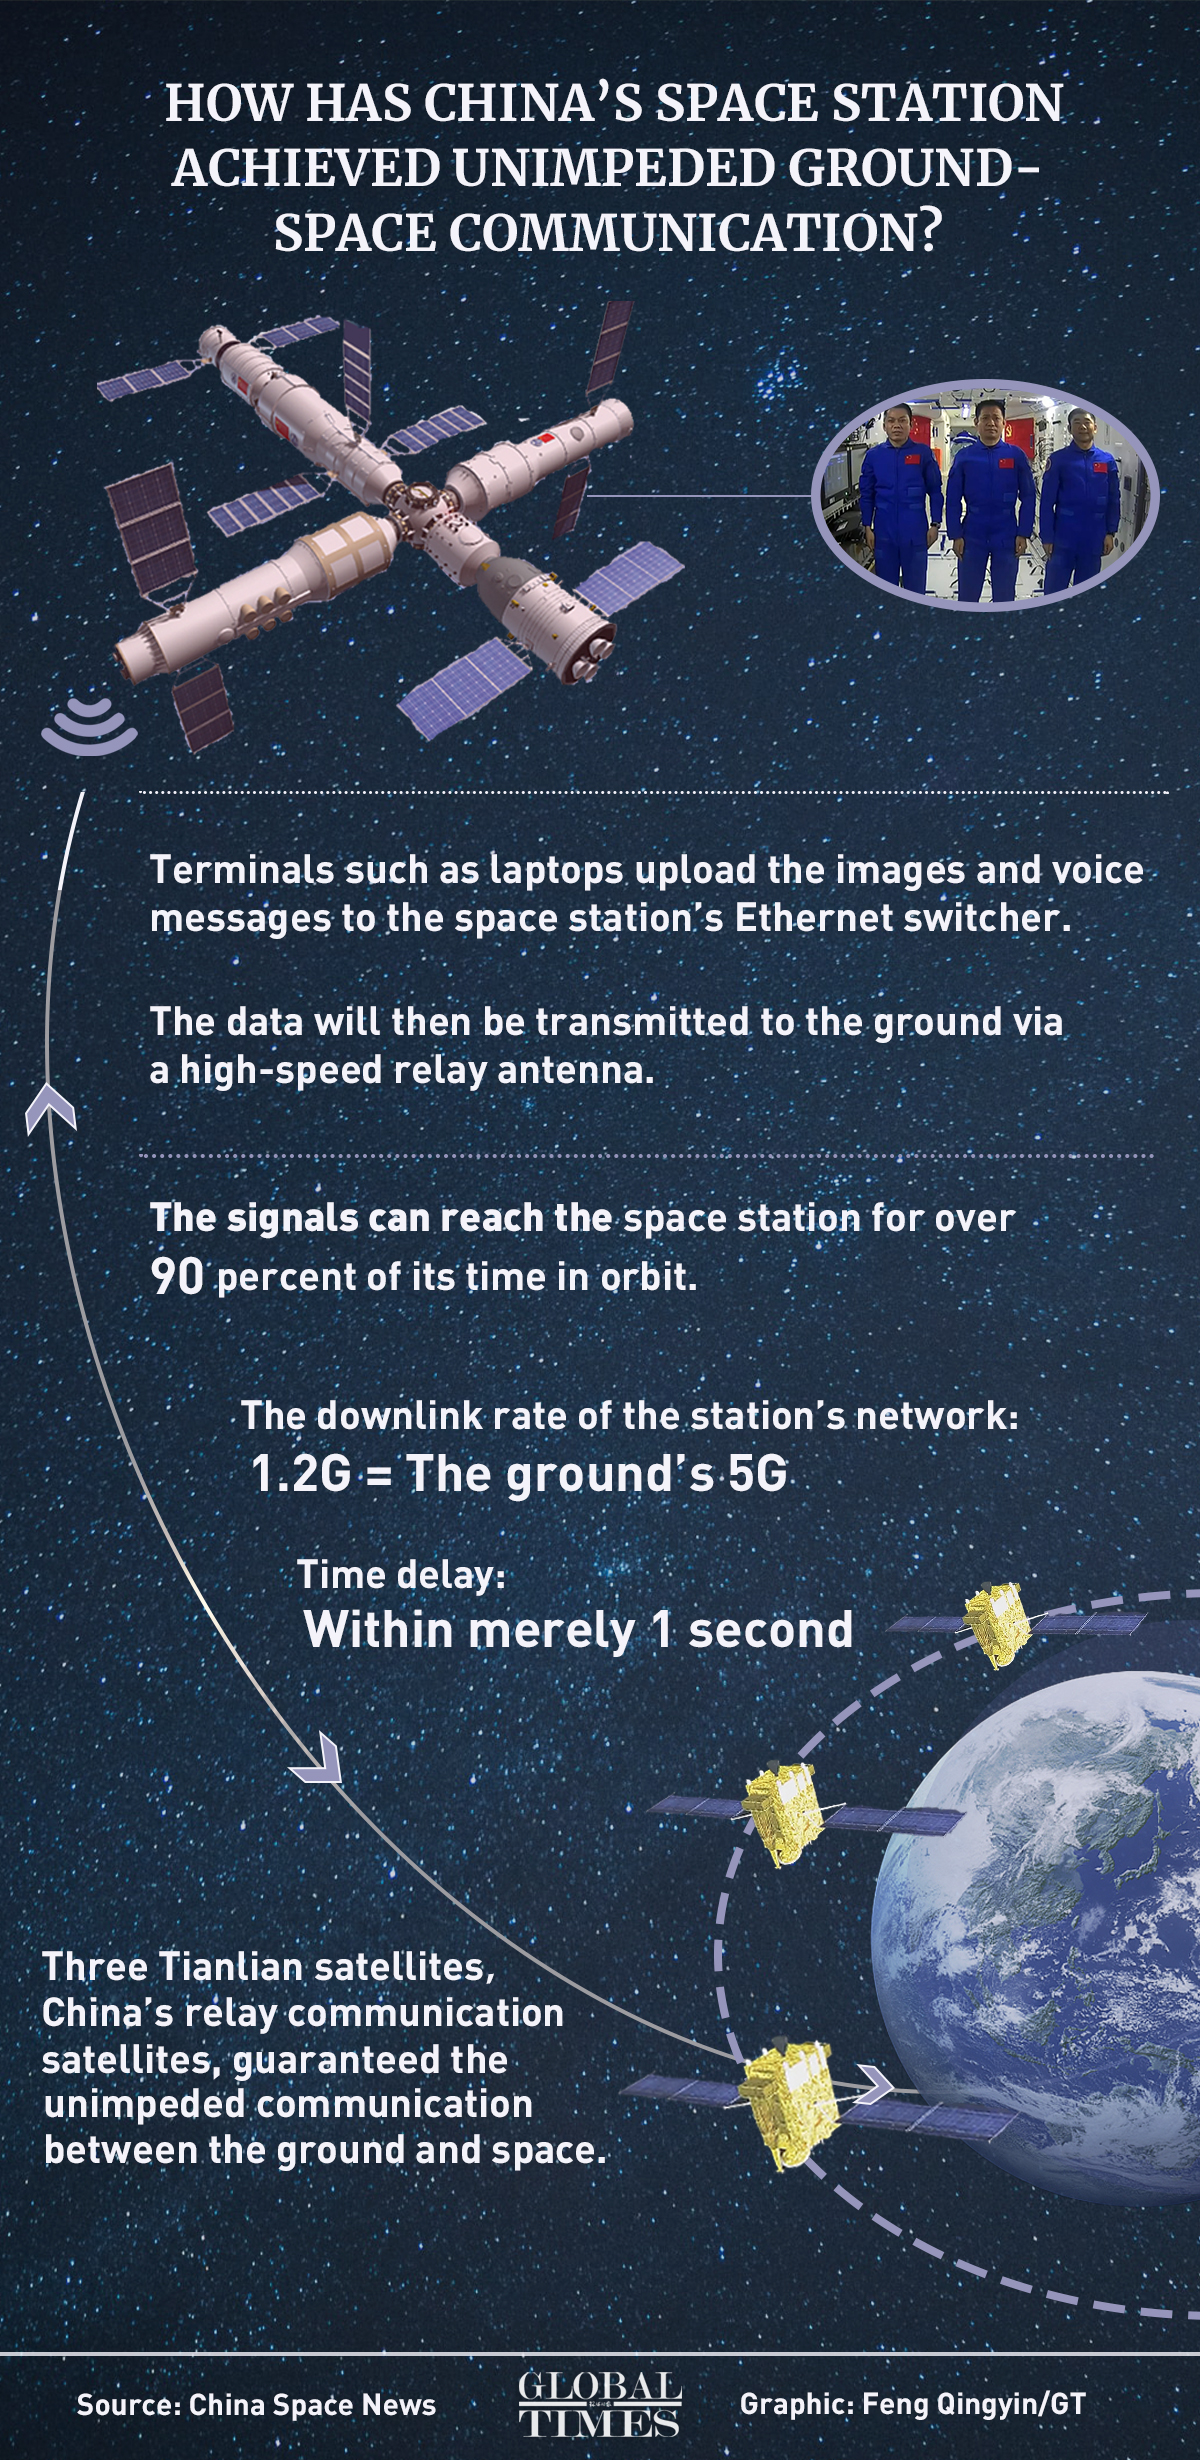 China's space station achieves unimpeded ground-space communication with a speed equaling to that of the ground's 5G communication. The time delay is within merely 1 second. How has China achieved this? Check out our infographic: